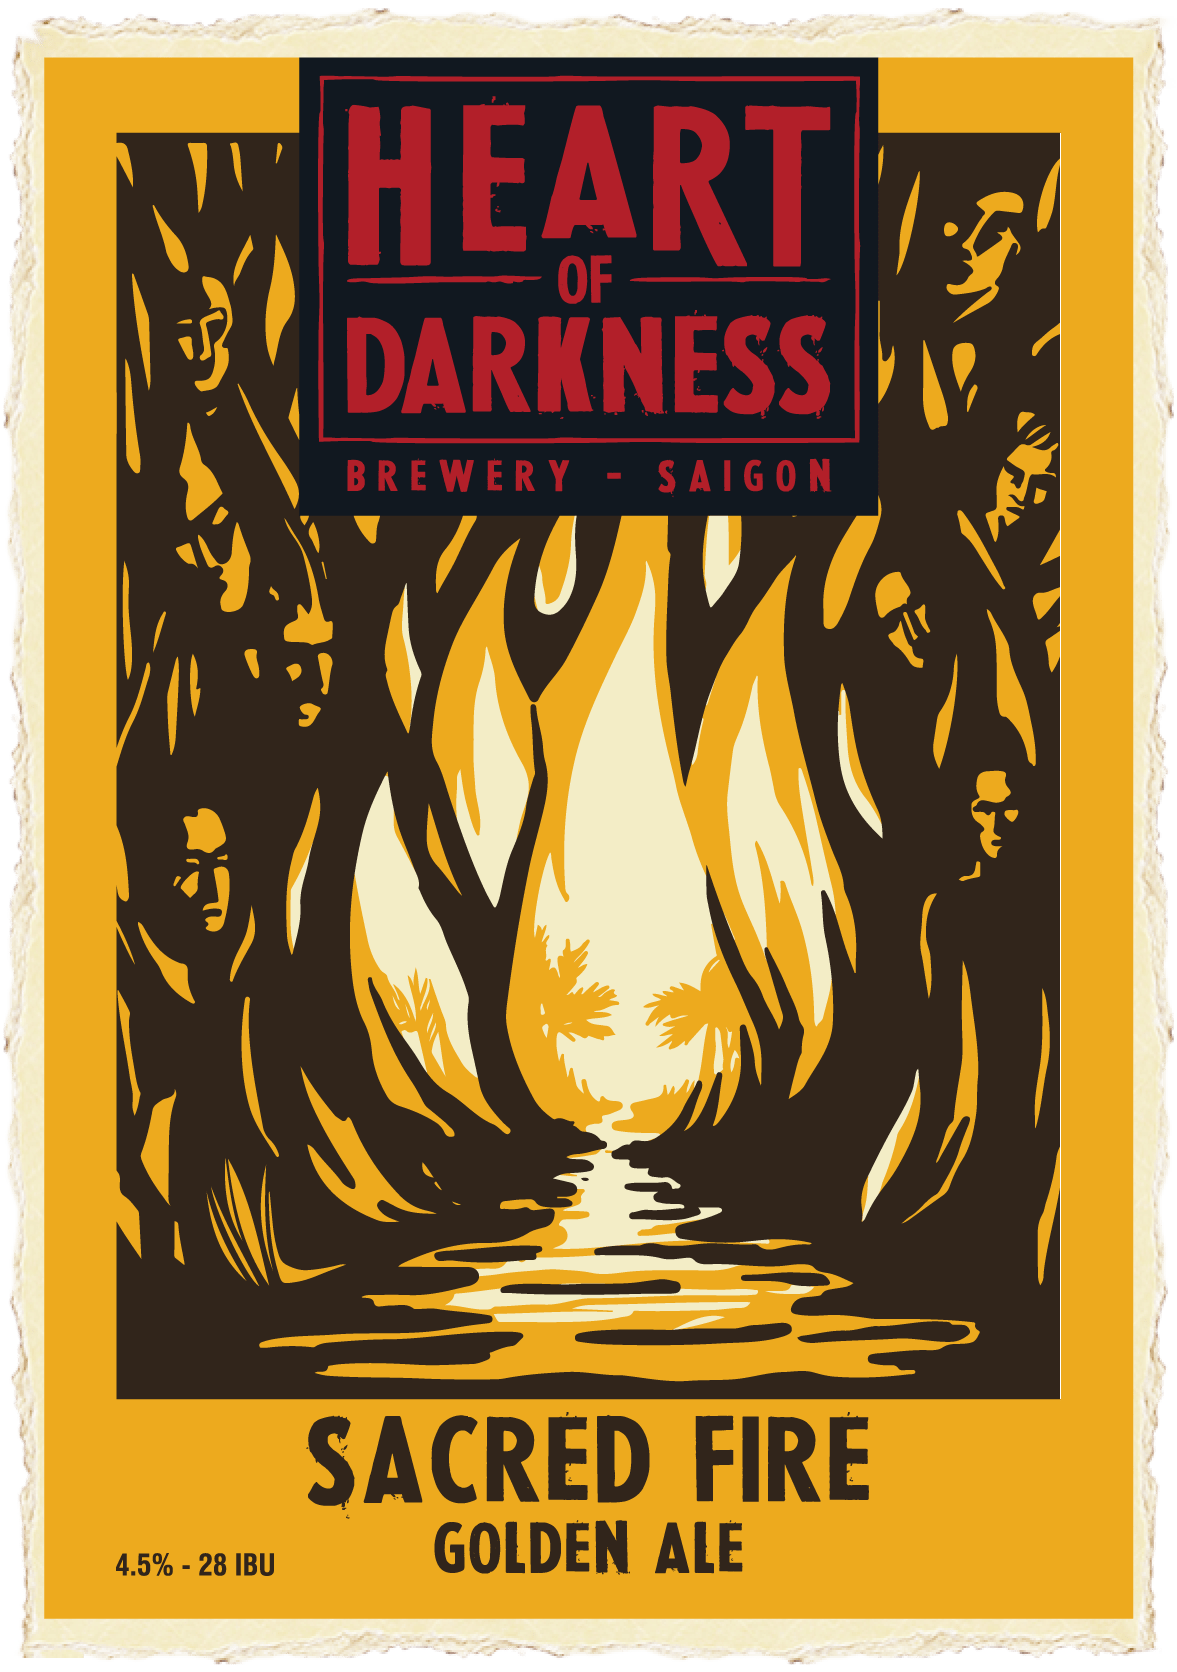 Heart of Darkness Craft Brewery: Building An Asian Craft Beer Empire-8